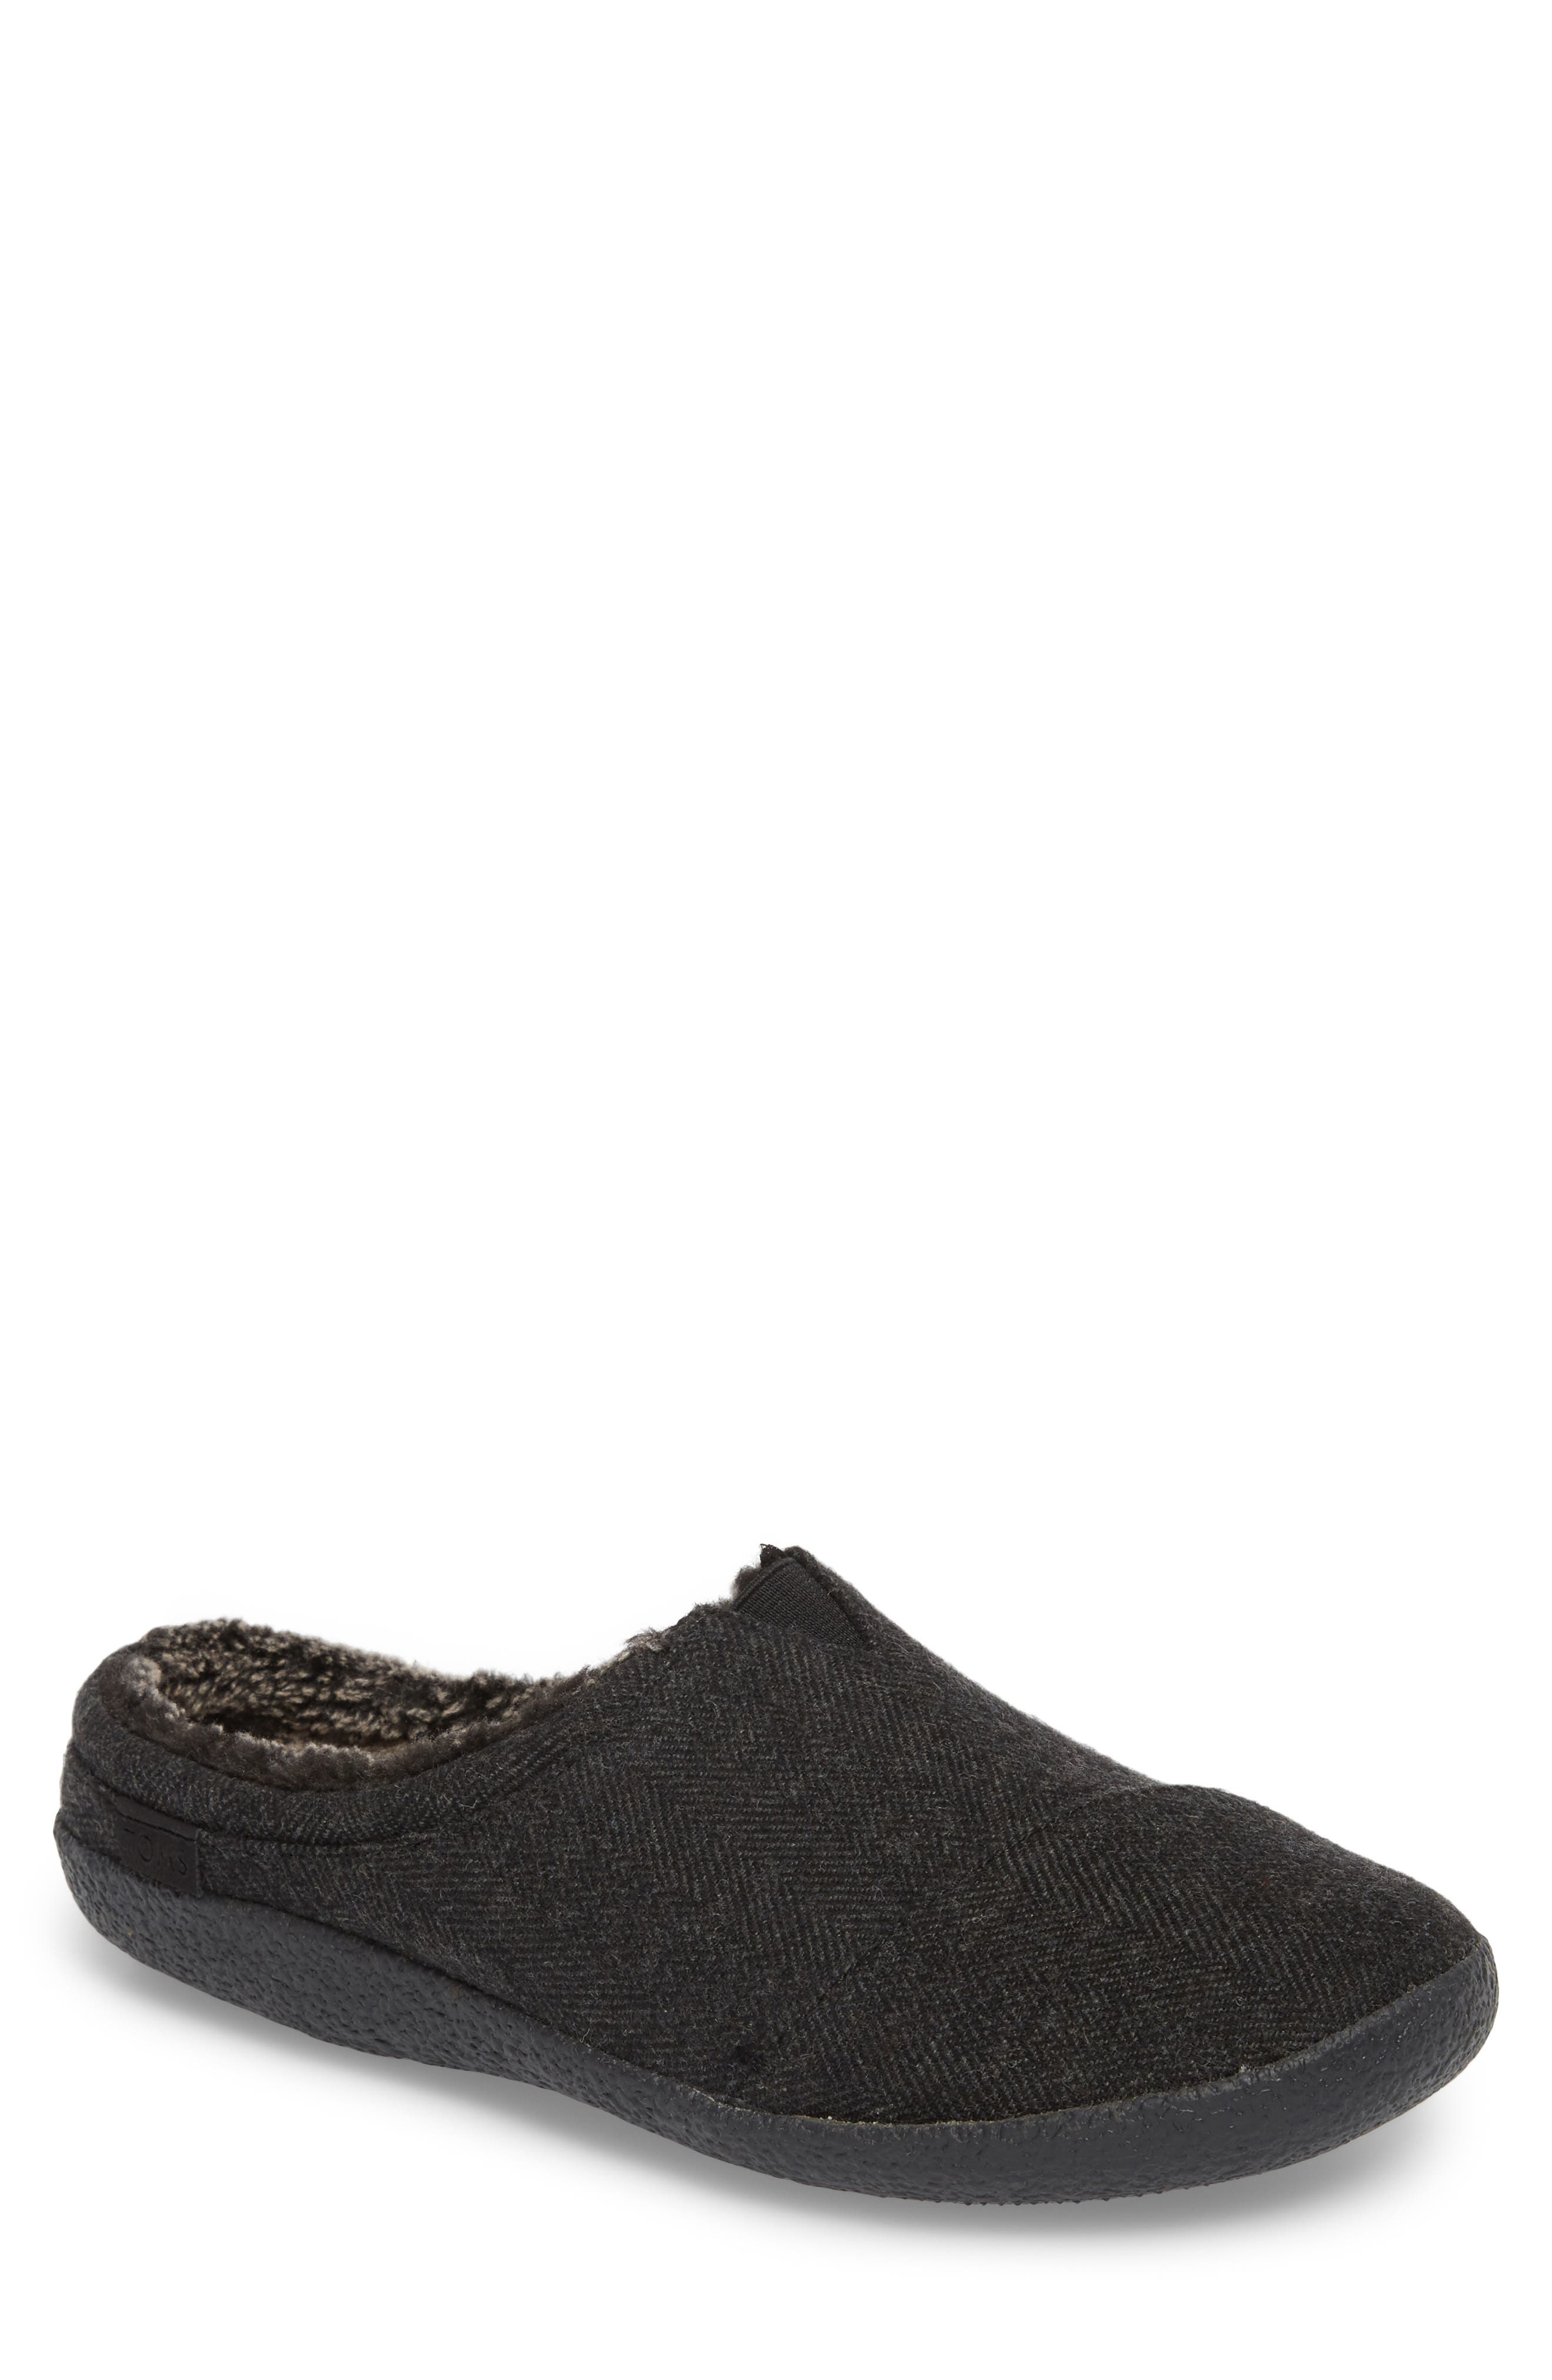 Berkeley Slipper with Faux Fur Lining,                         Main,                         color, Black